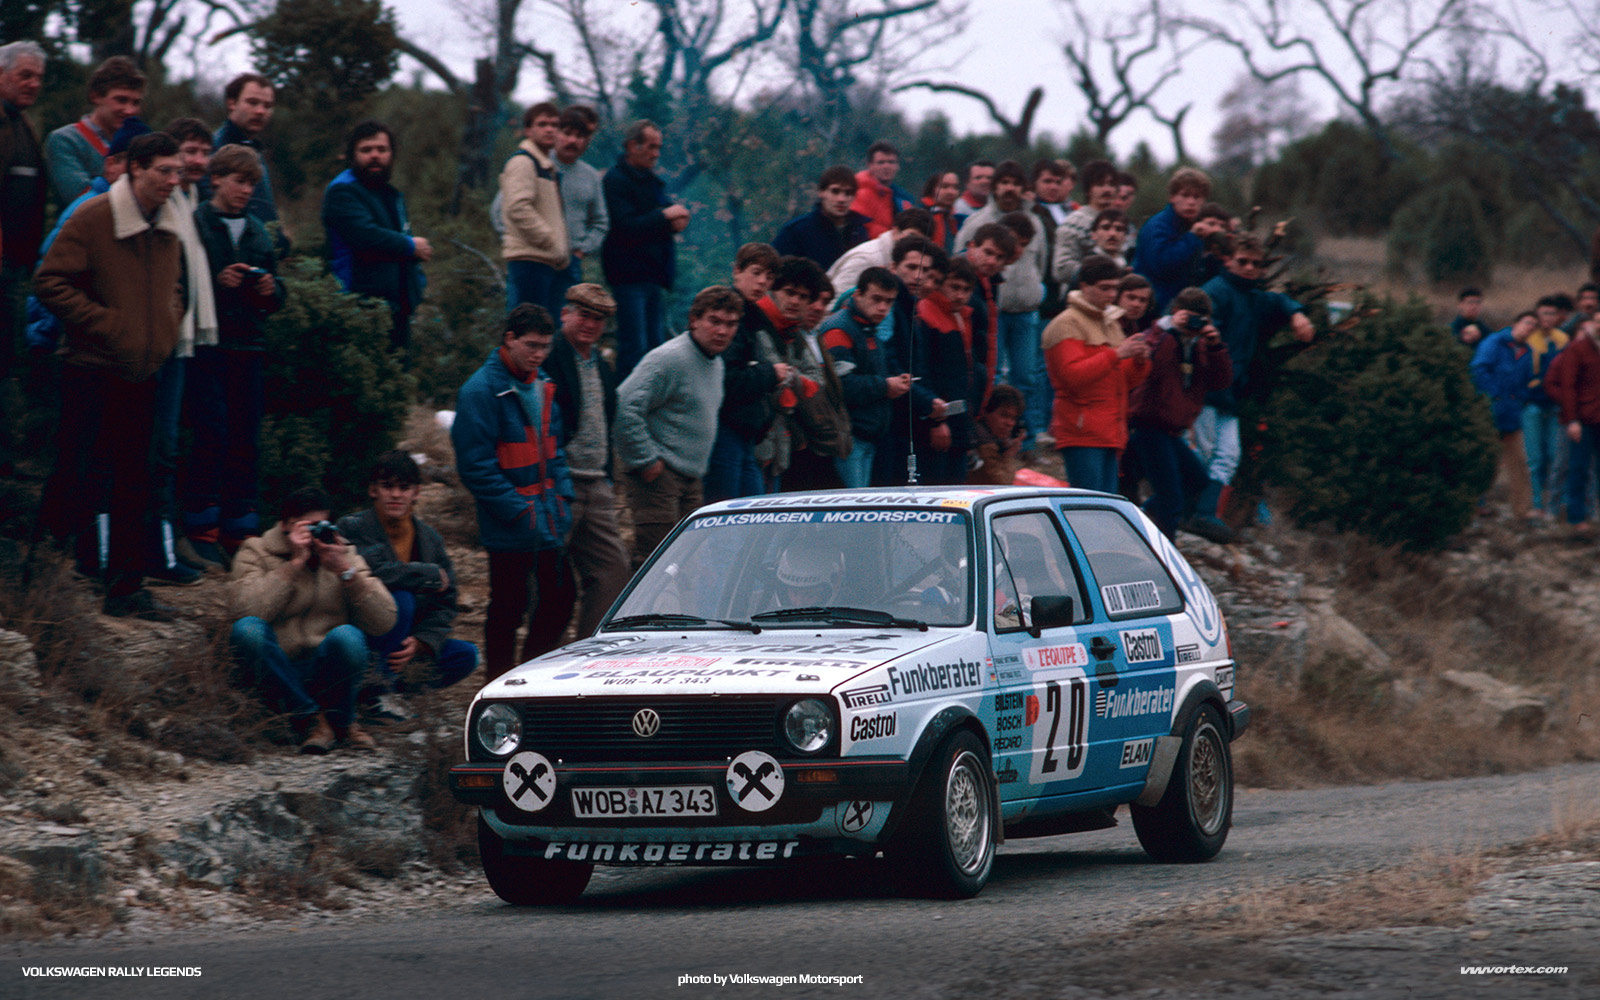 volkswagen-rally-legends-378